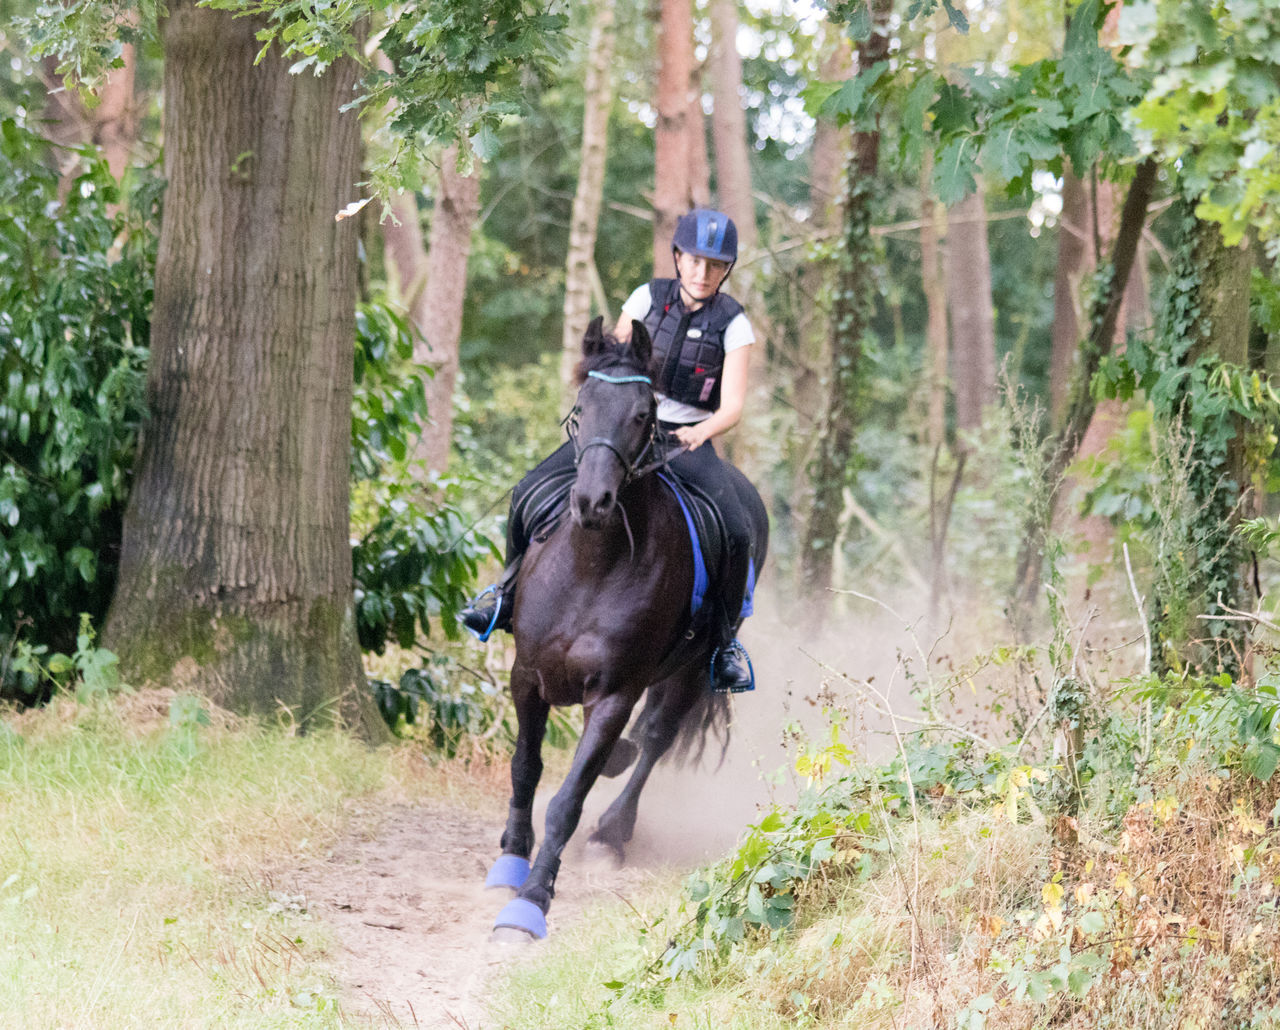 Jockey Riding Horse Against Trees In Forest During Training